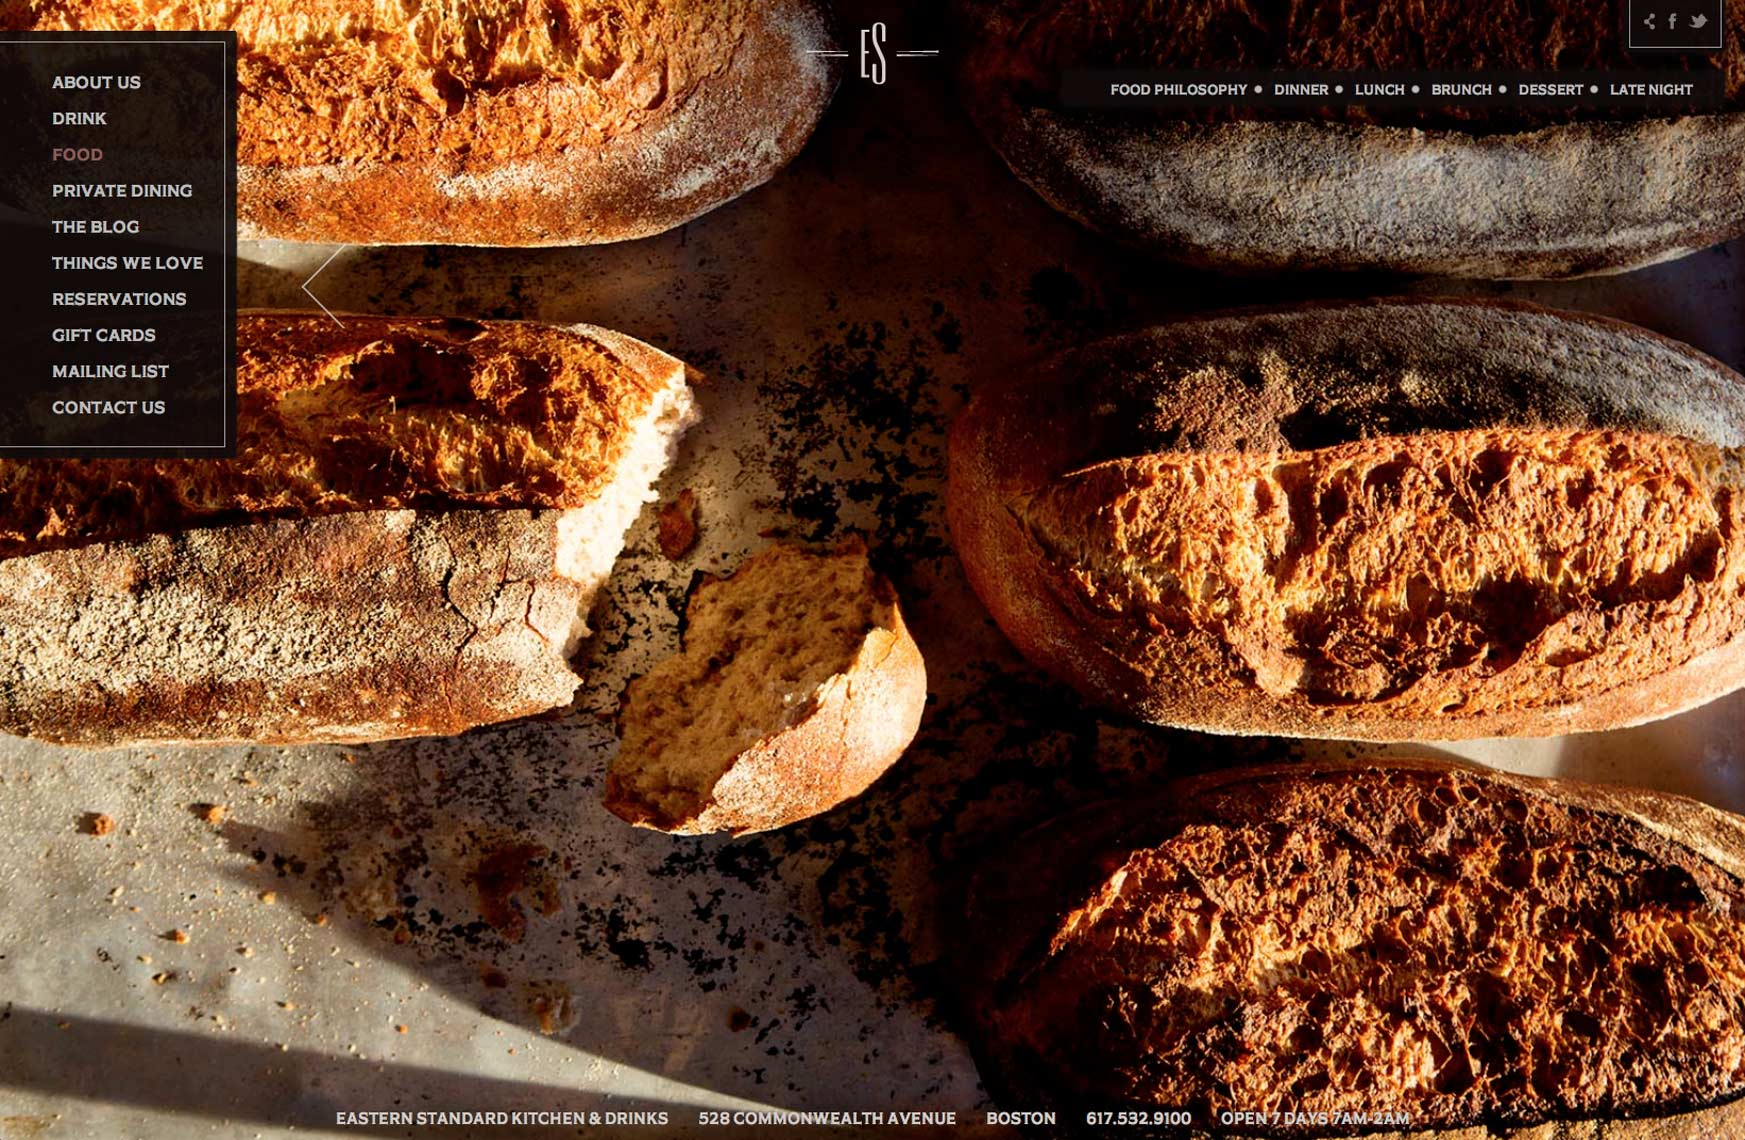 Kristin Teig Photography | Fresh bread at Eastern Standard